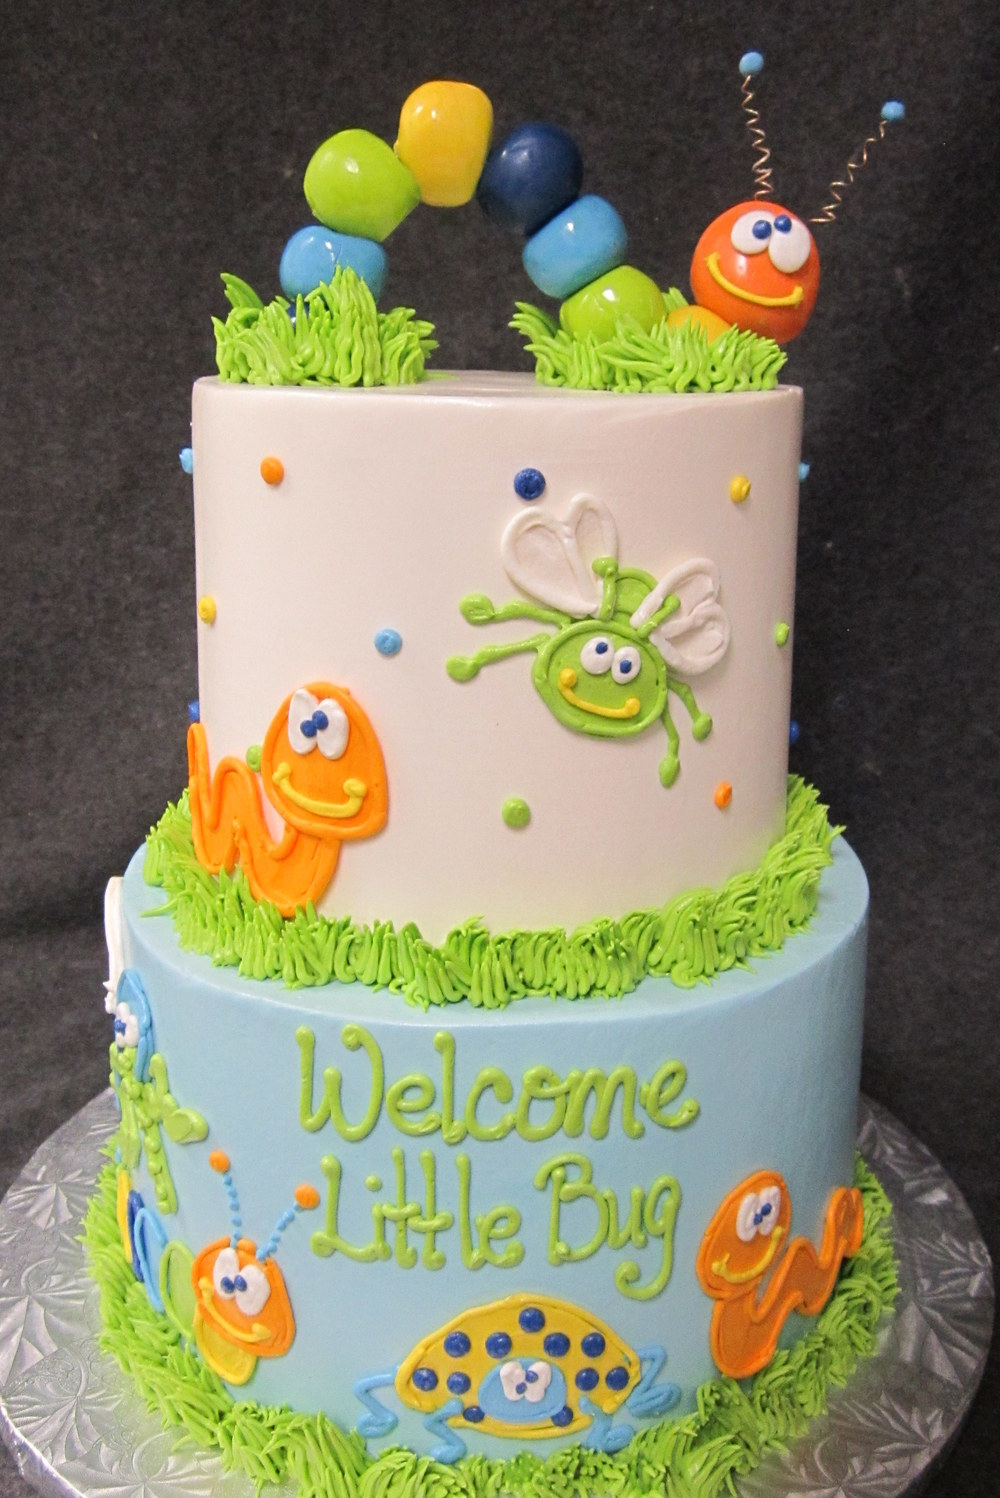 little bug two tiered cake - Copy - Copy - Copy.jpg